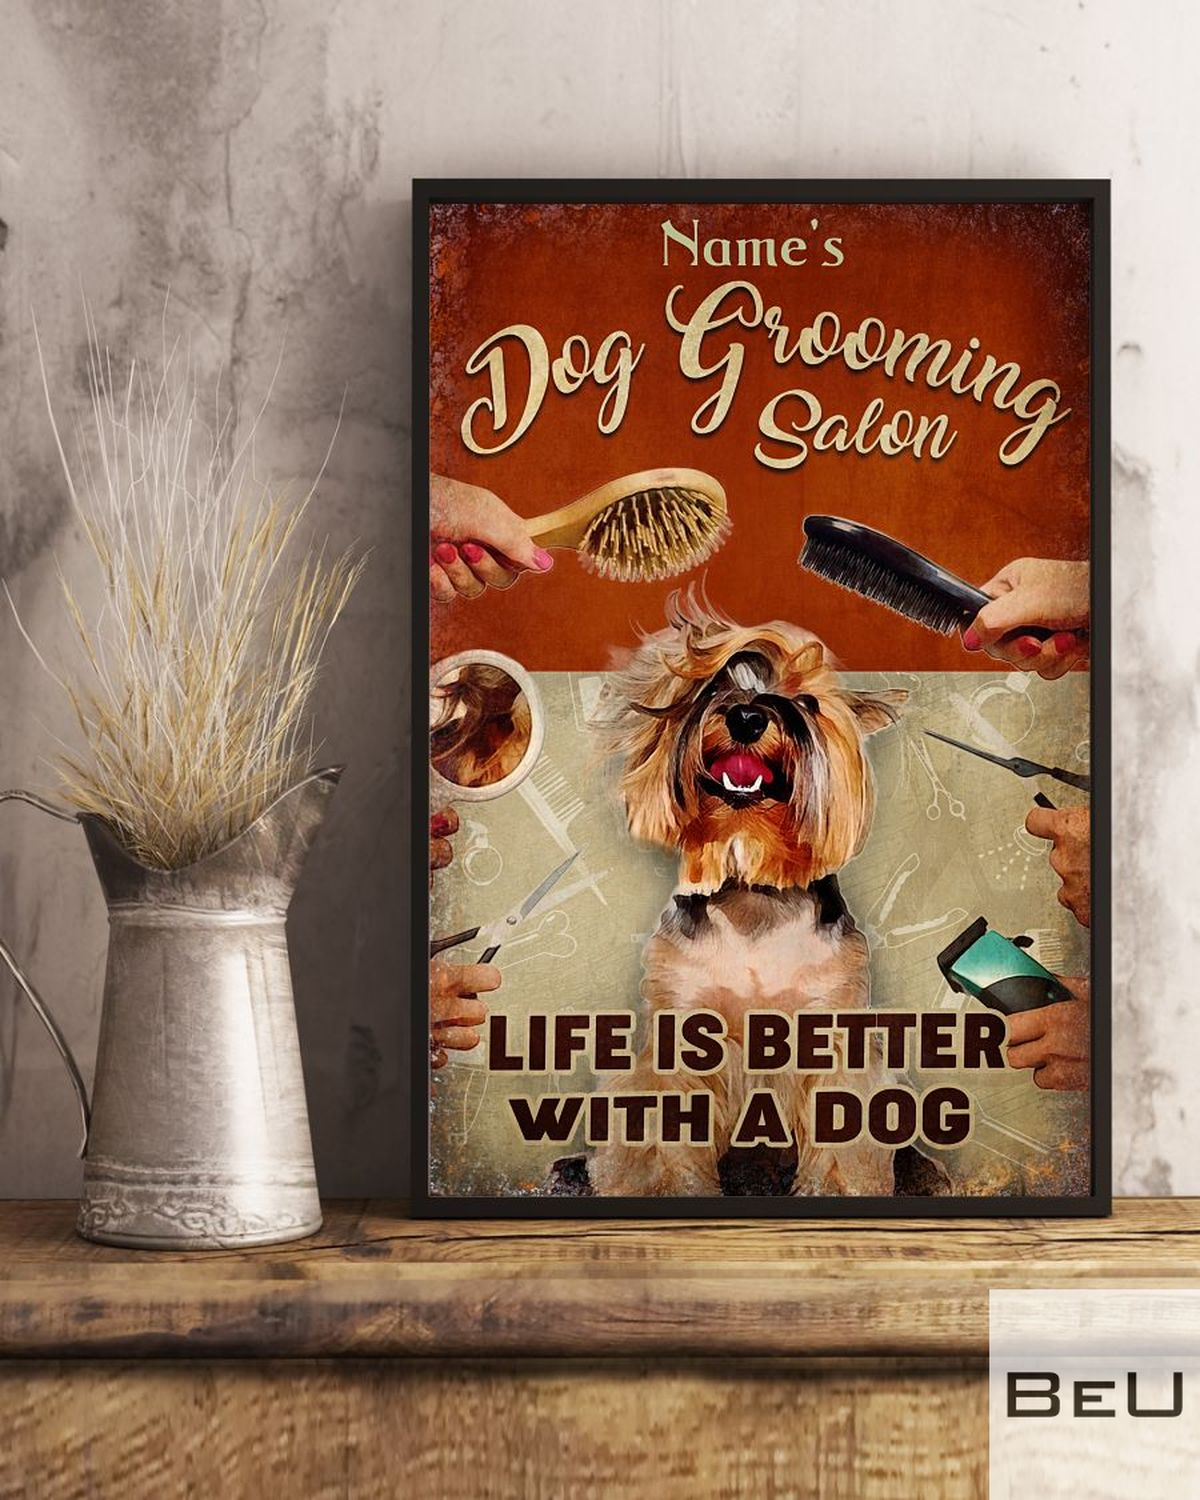 Personalized Dog Grooming Salon life is better with a dog posterc